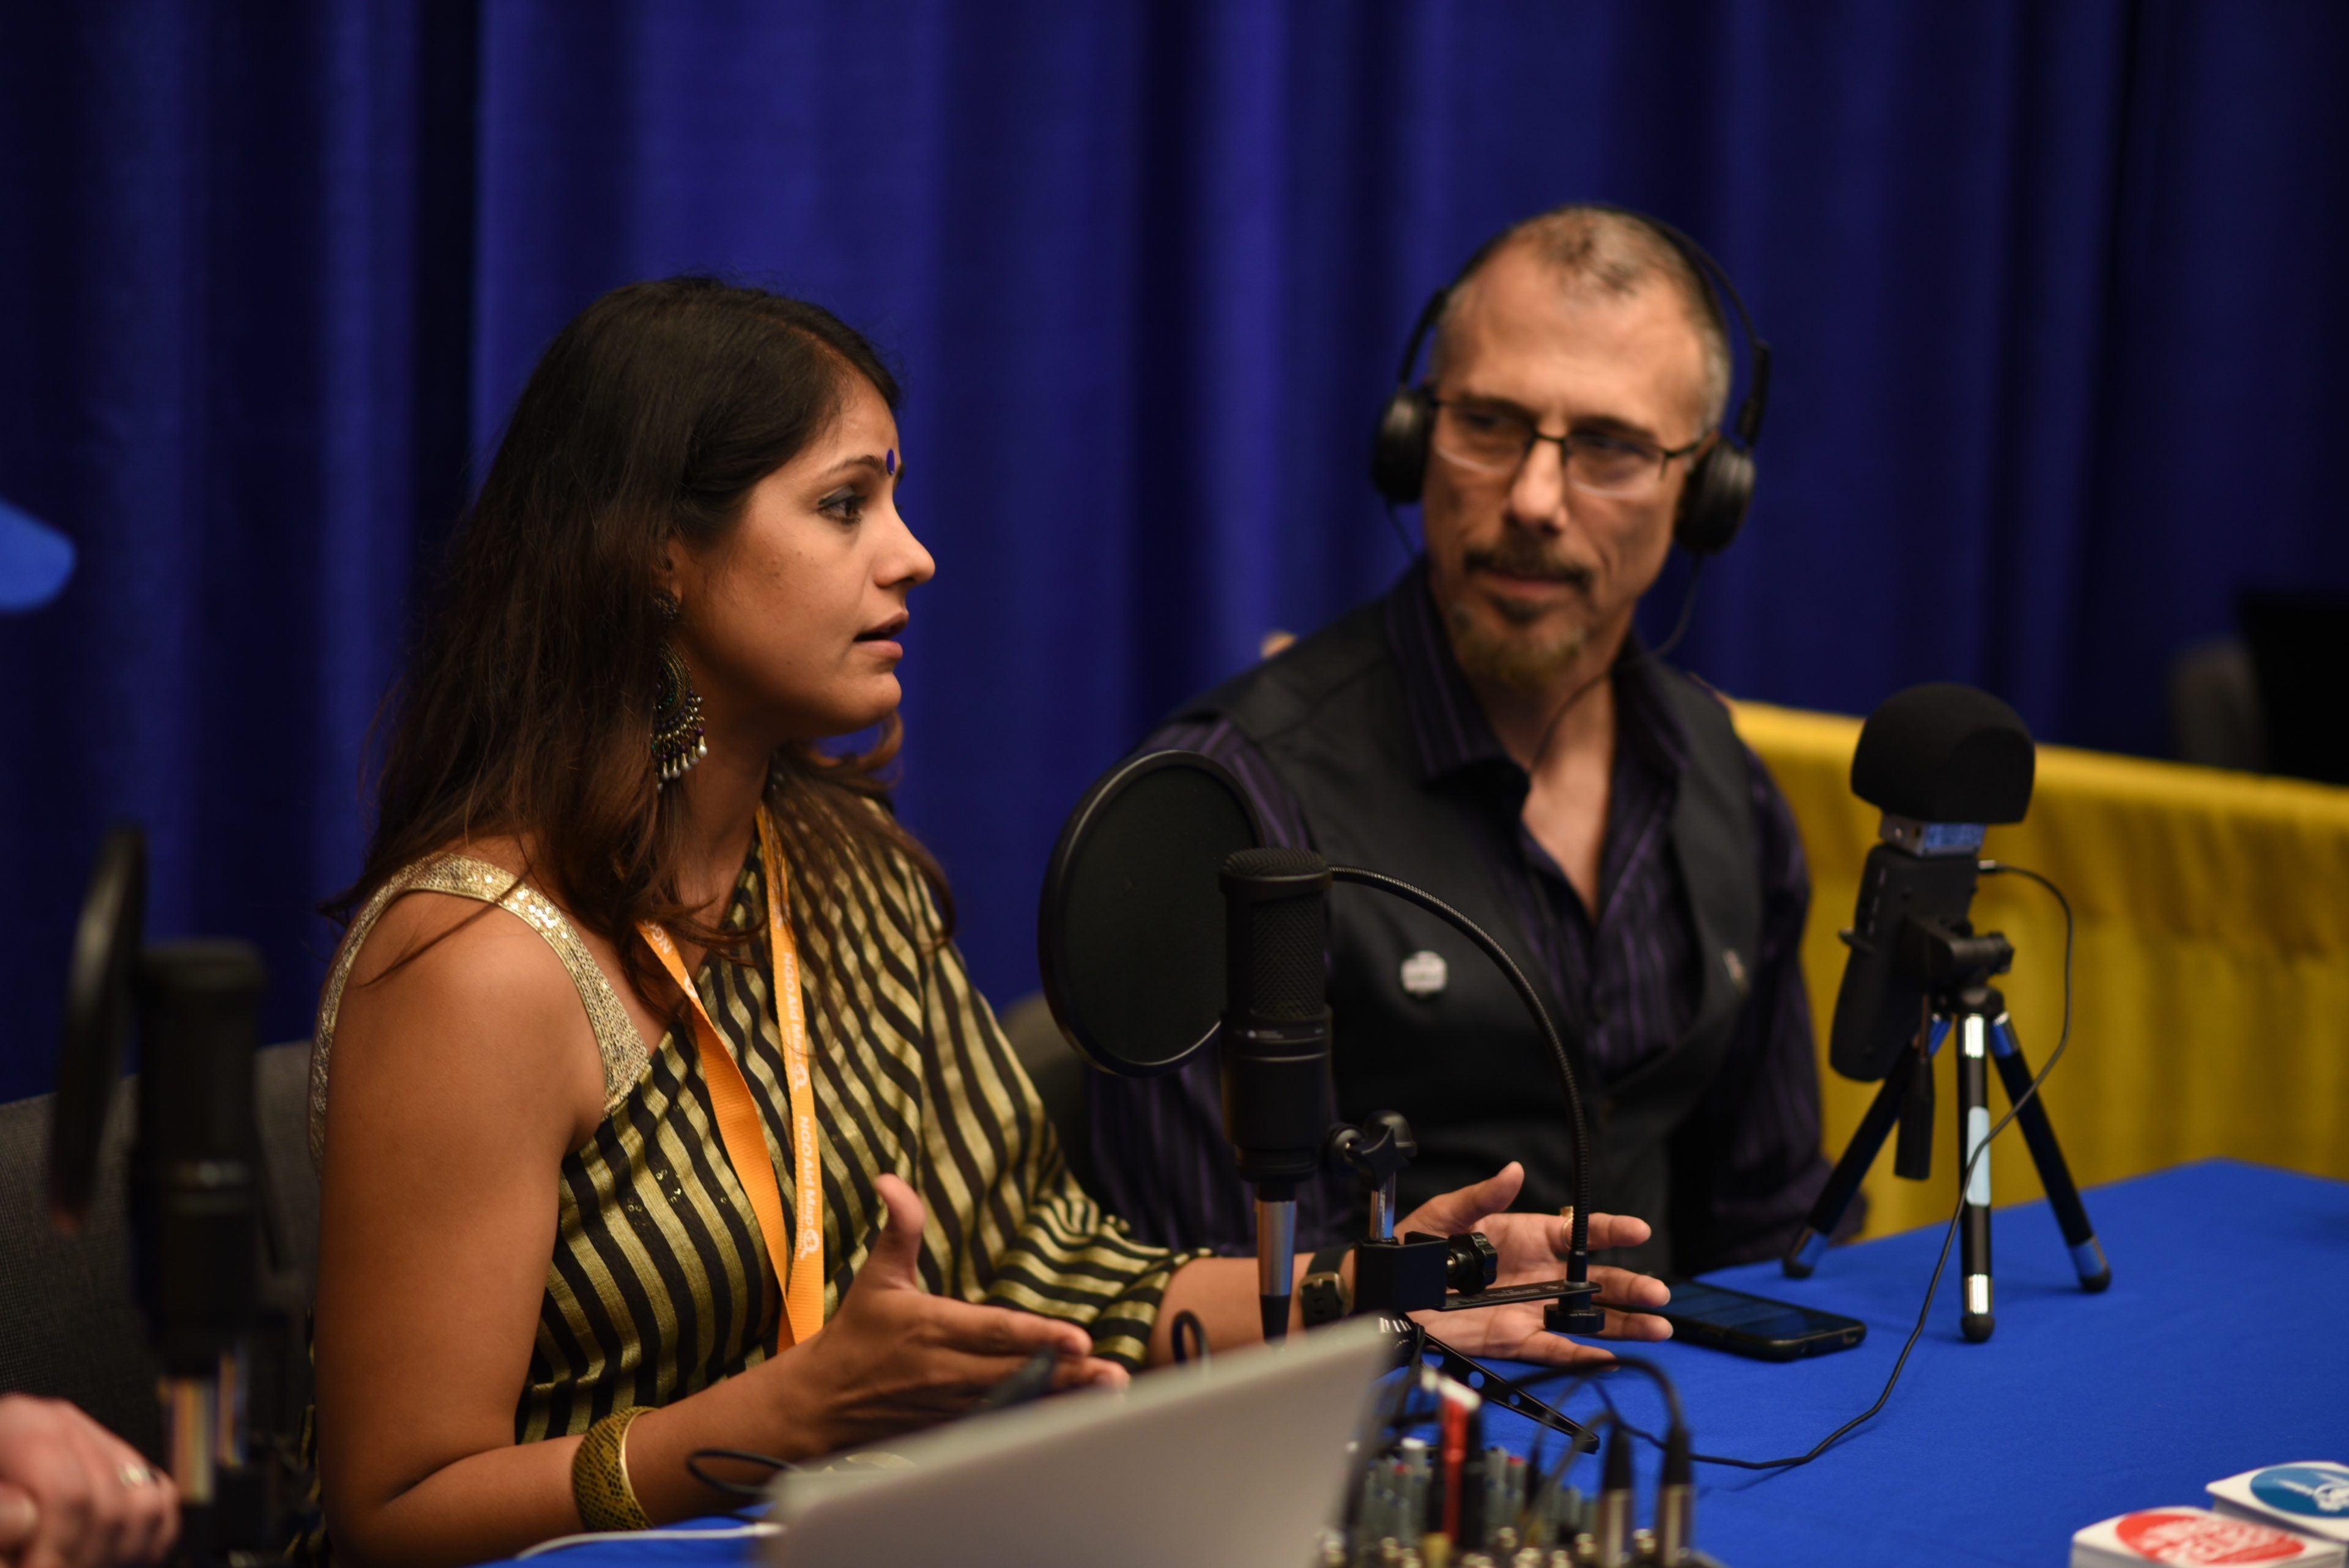 a woman and a man talk during a podcast recording